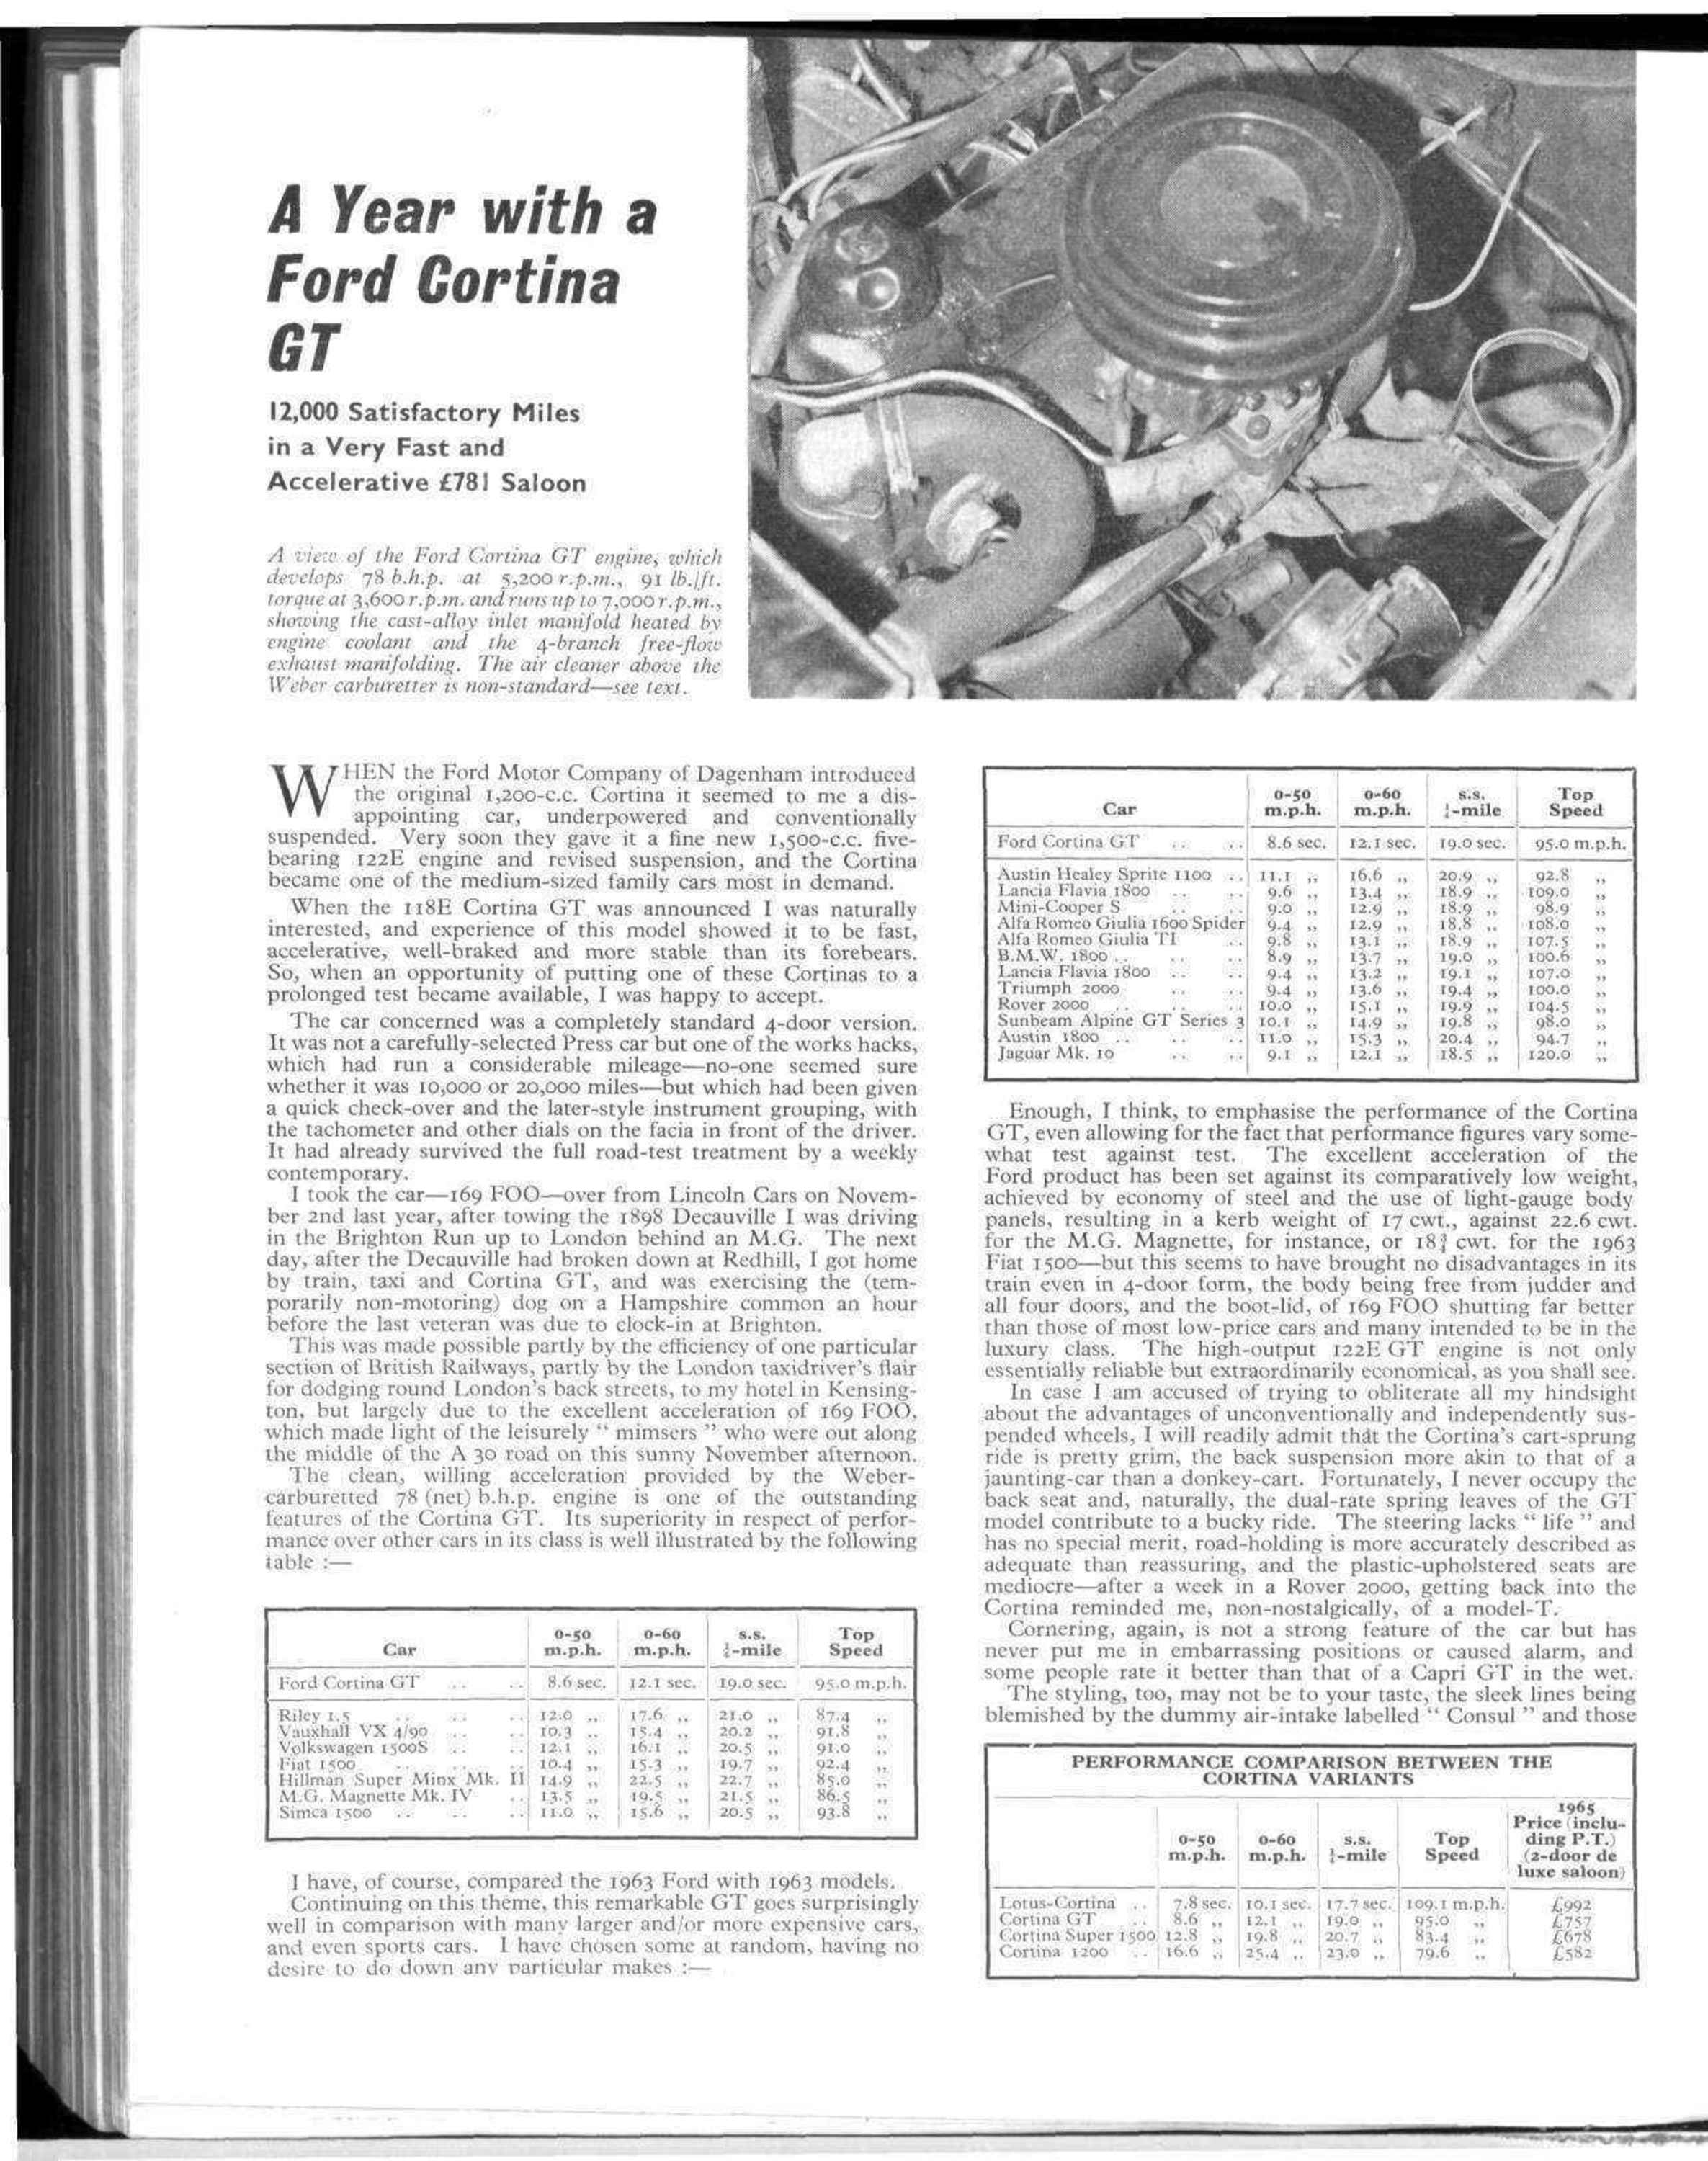 A Year with a Ford Cortina GT image